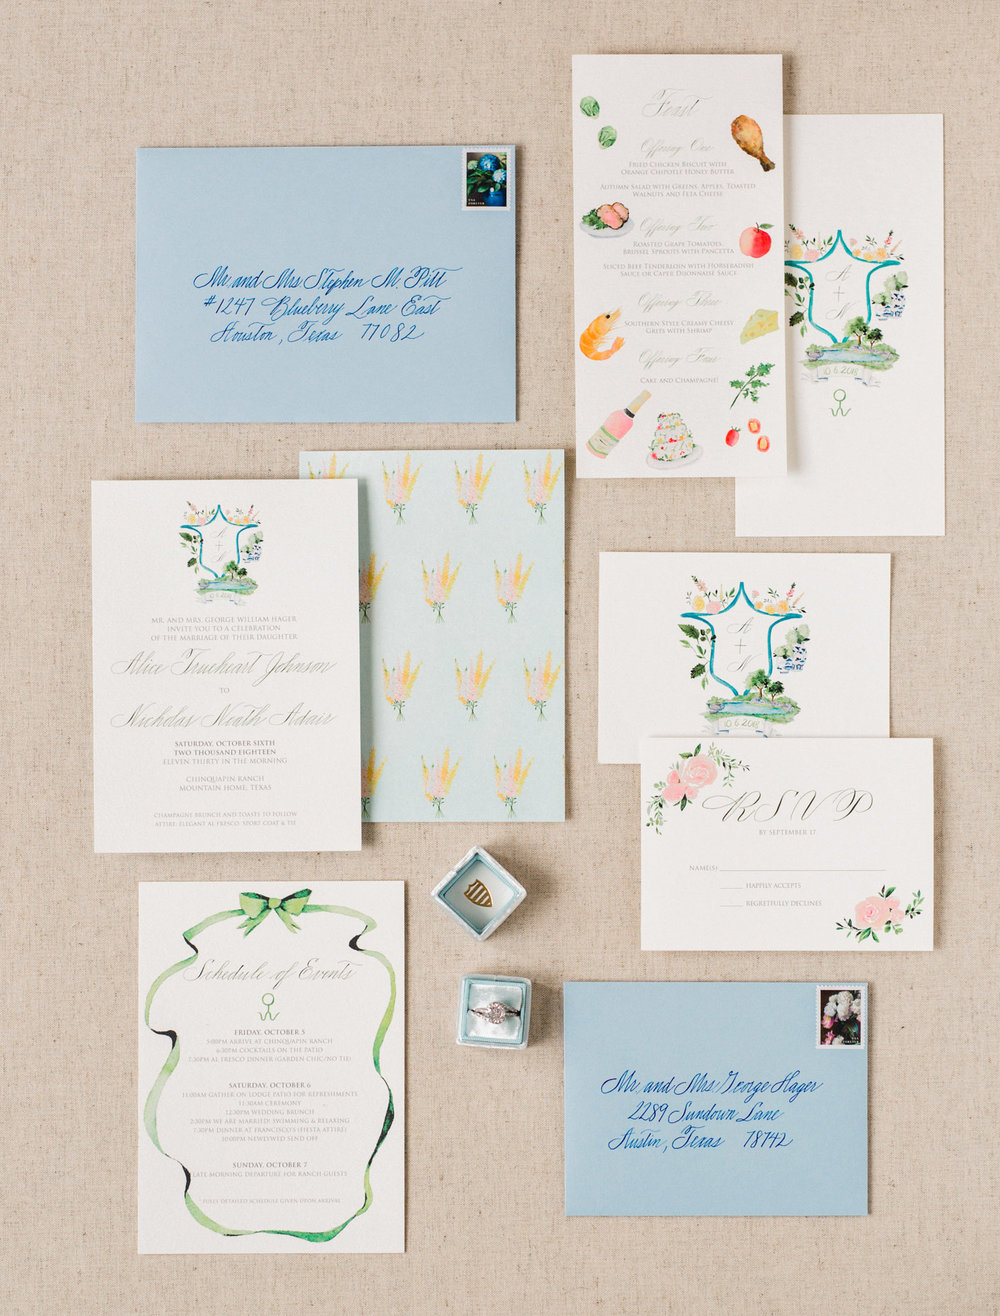 Watercolor wedding stationery 1.JPG